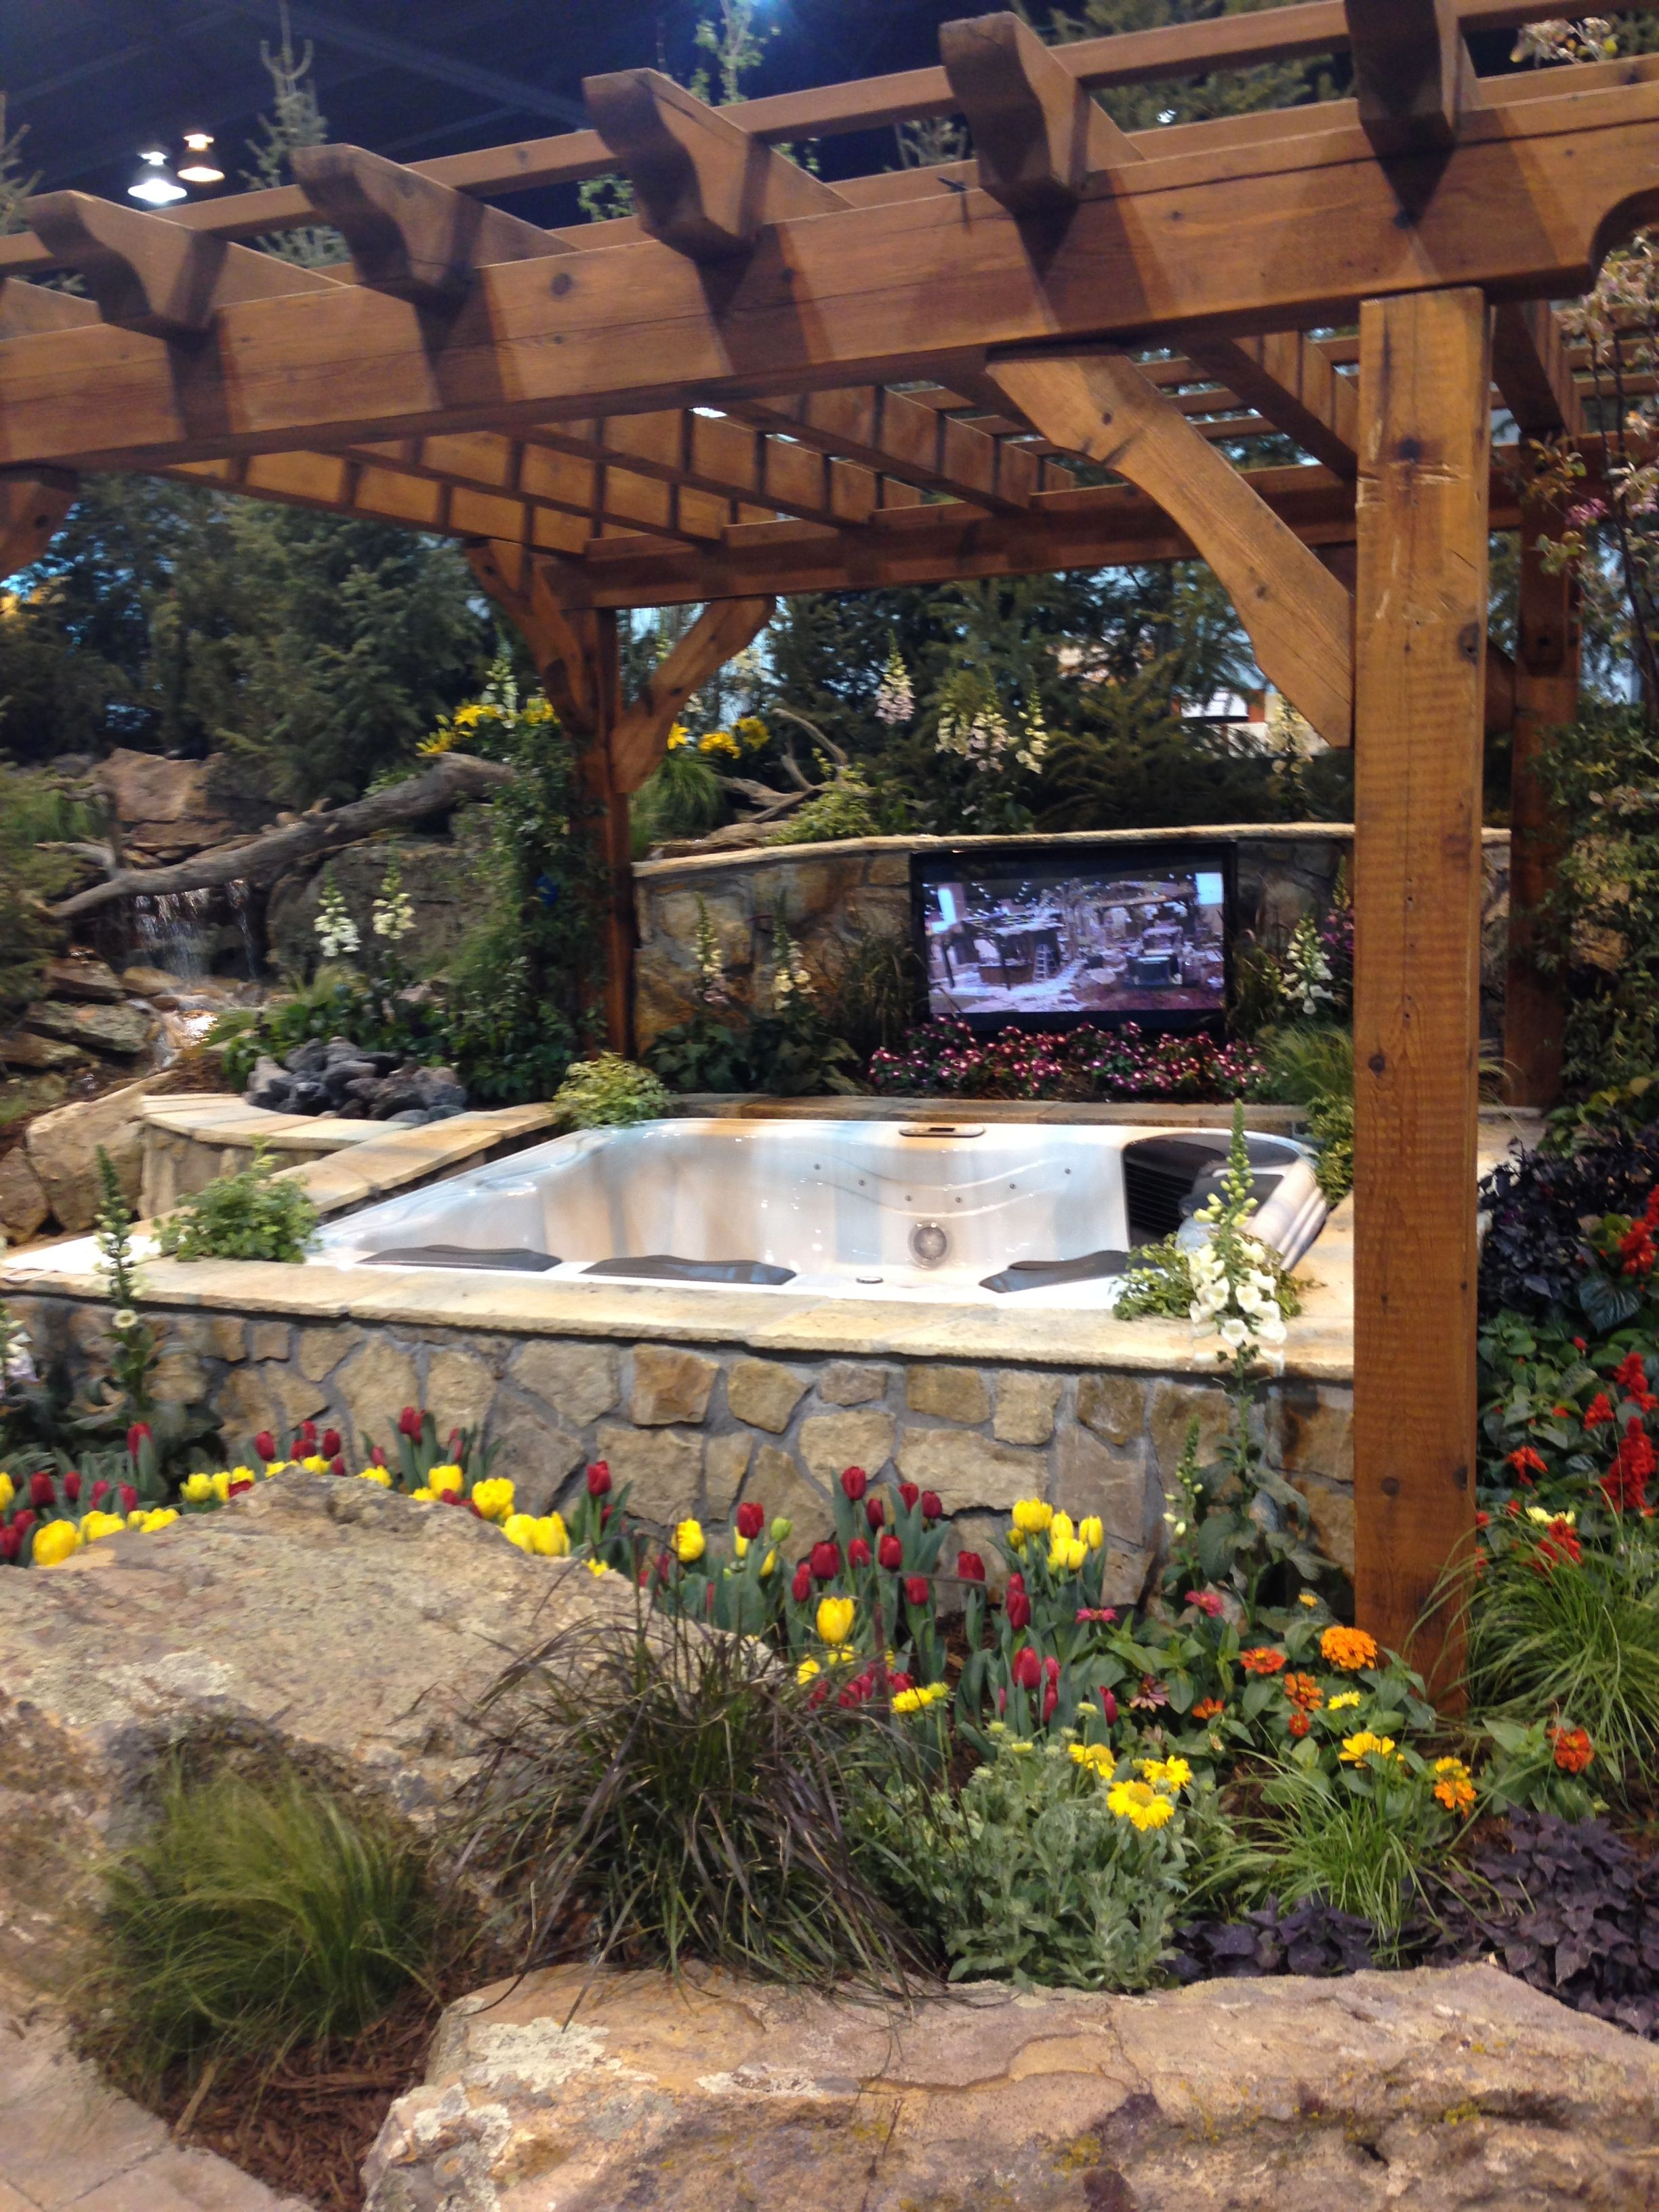 RMPW Exhibit At The Colorado Home And Garden Show In Denver, CO. Plan Your  Dream Backyard, Complete With A Hot Tub And Pergula.